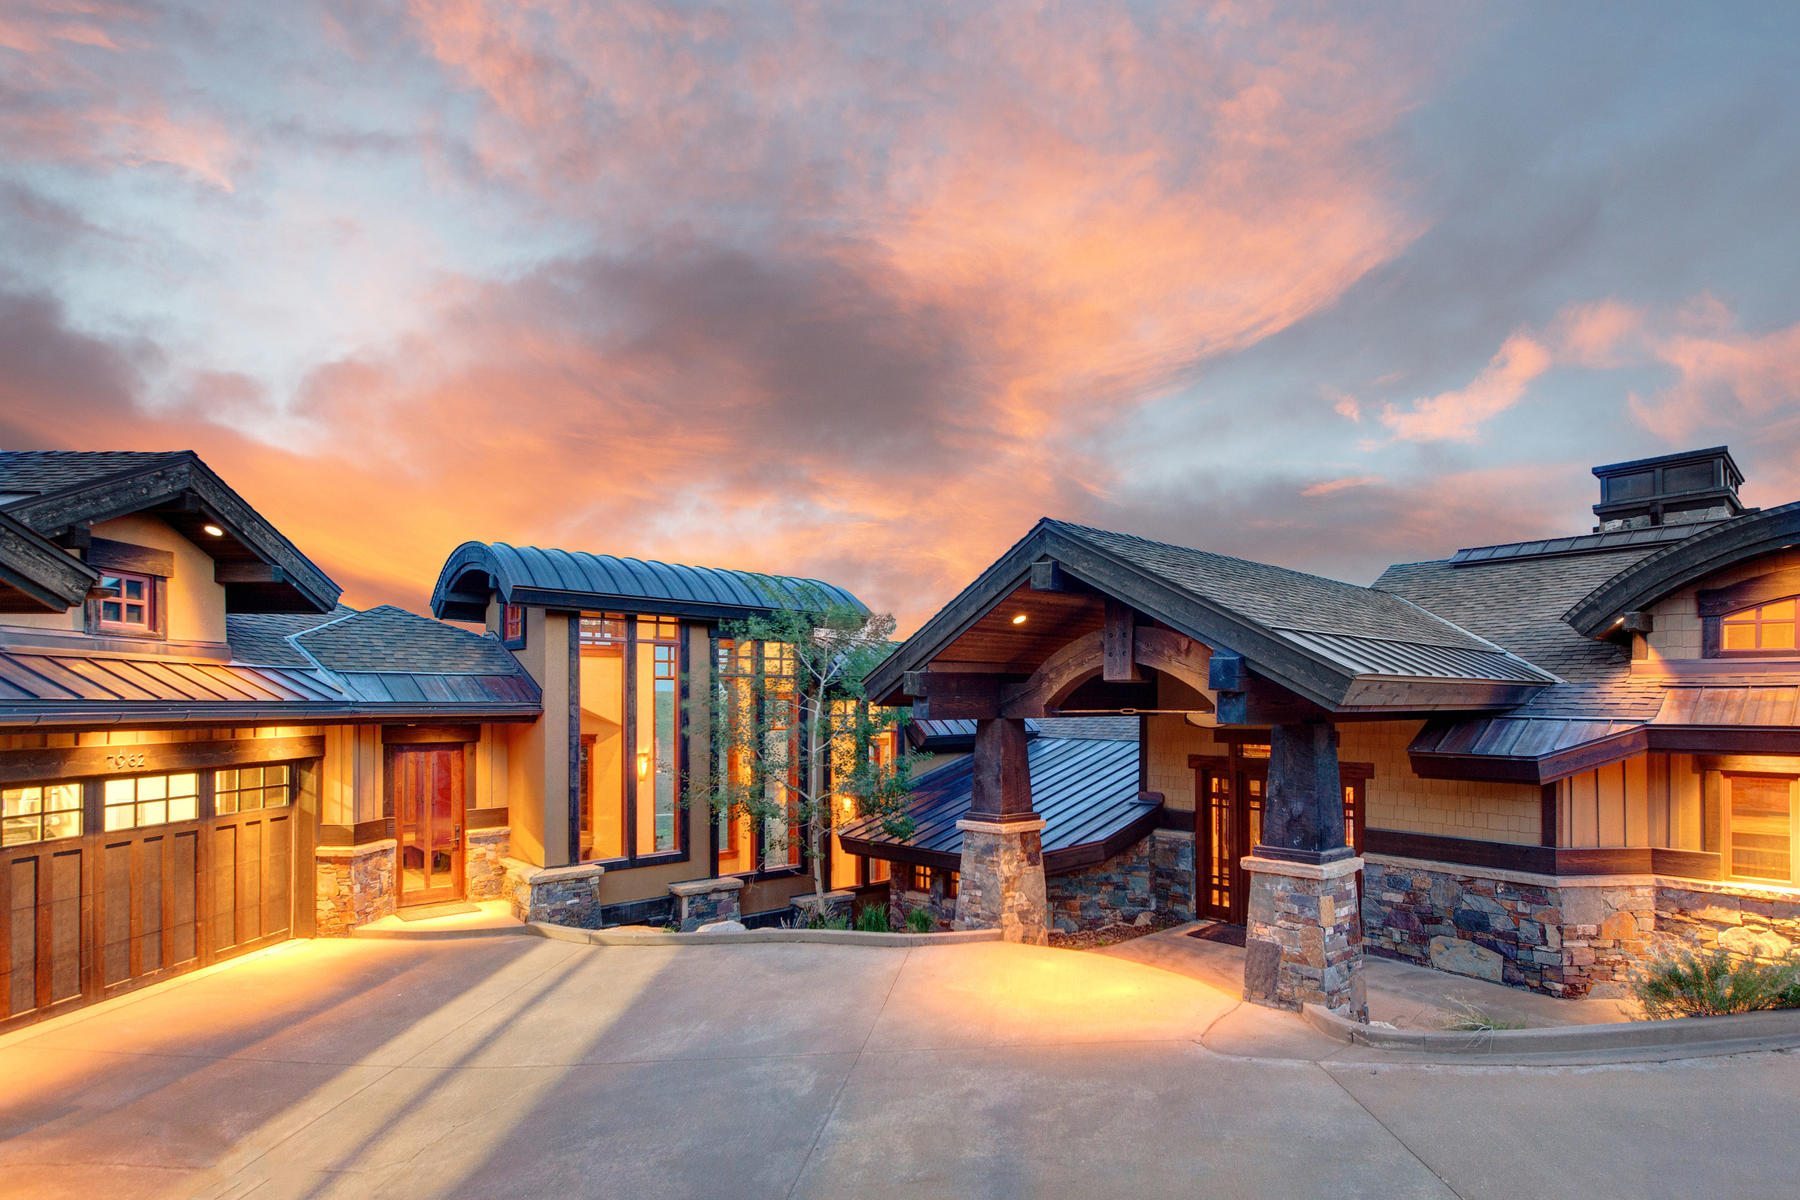 Single Family Home for Sale at Warm Contemporary Promontory Home With 270 Degree Mountain Views 7982 N Sunrise Lp Park City, Utah, 84098 United States